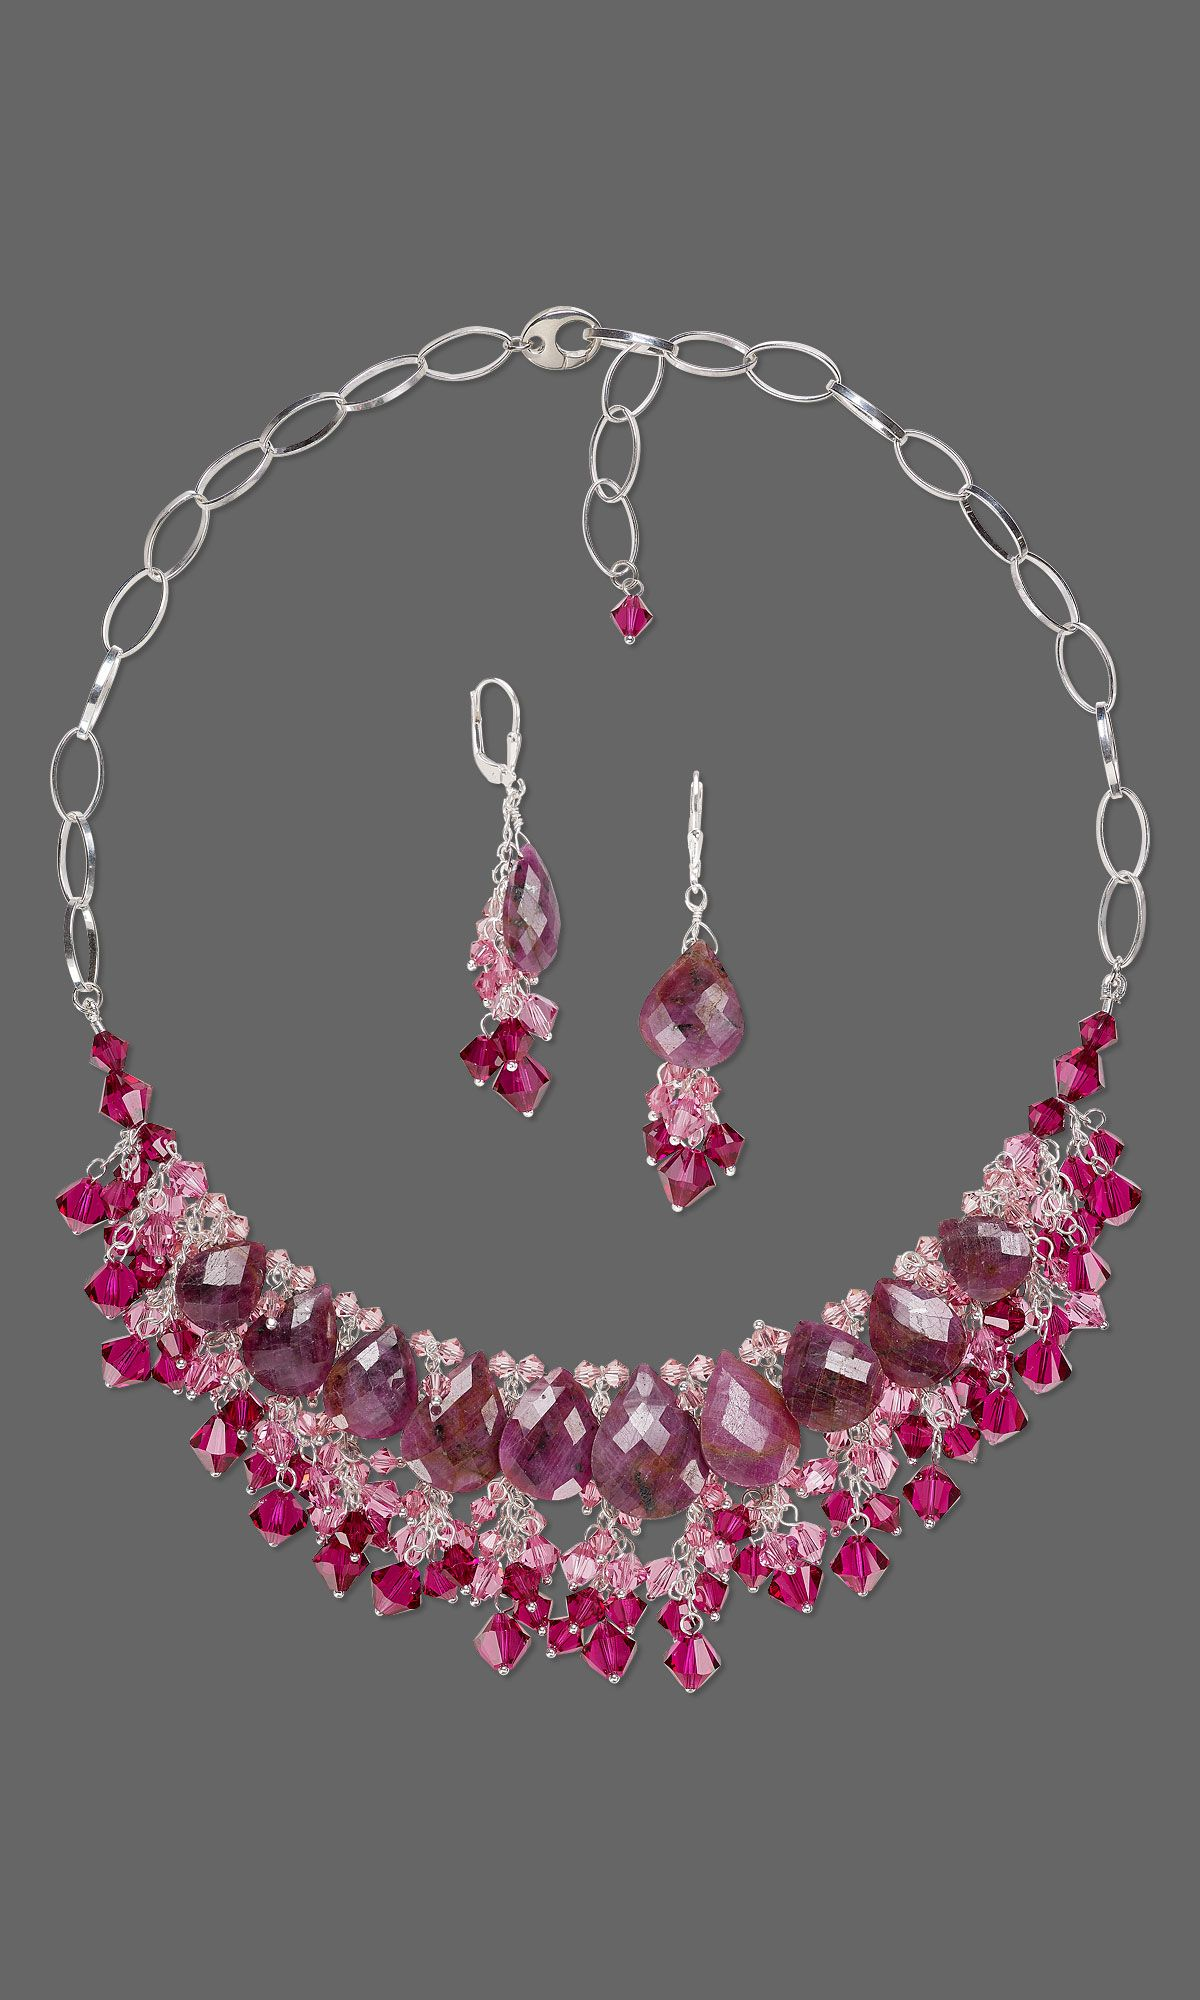 Jewelry Design Single Strand Necklace And Earring Set With Indian Ruby Gemstone Beads